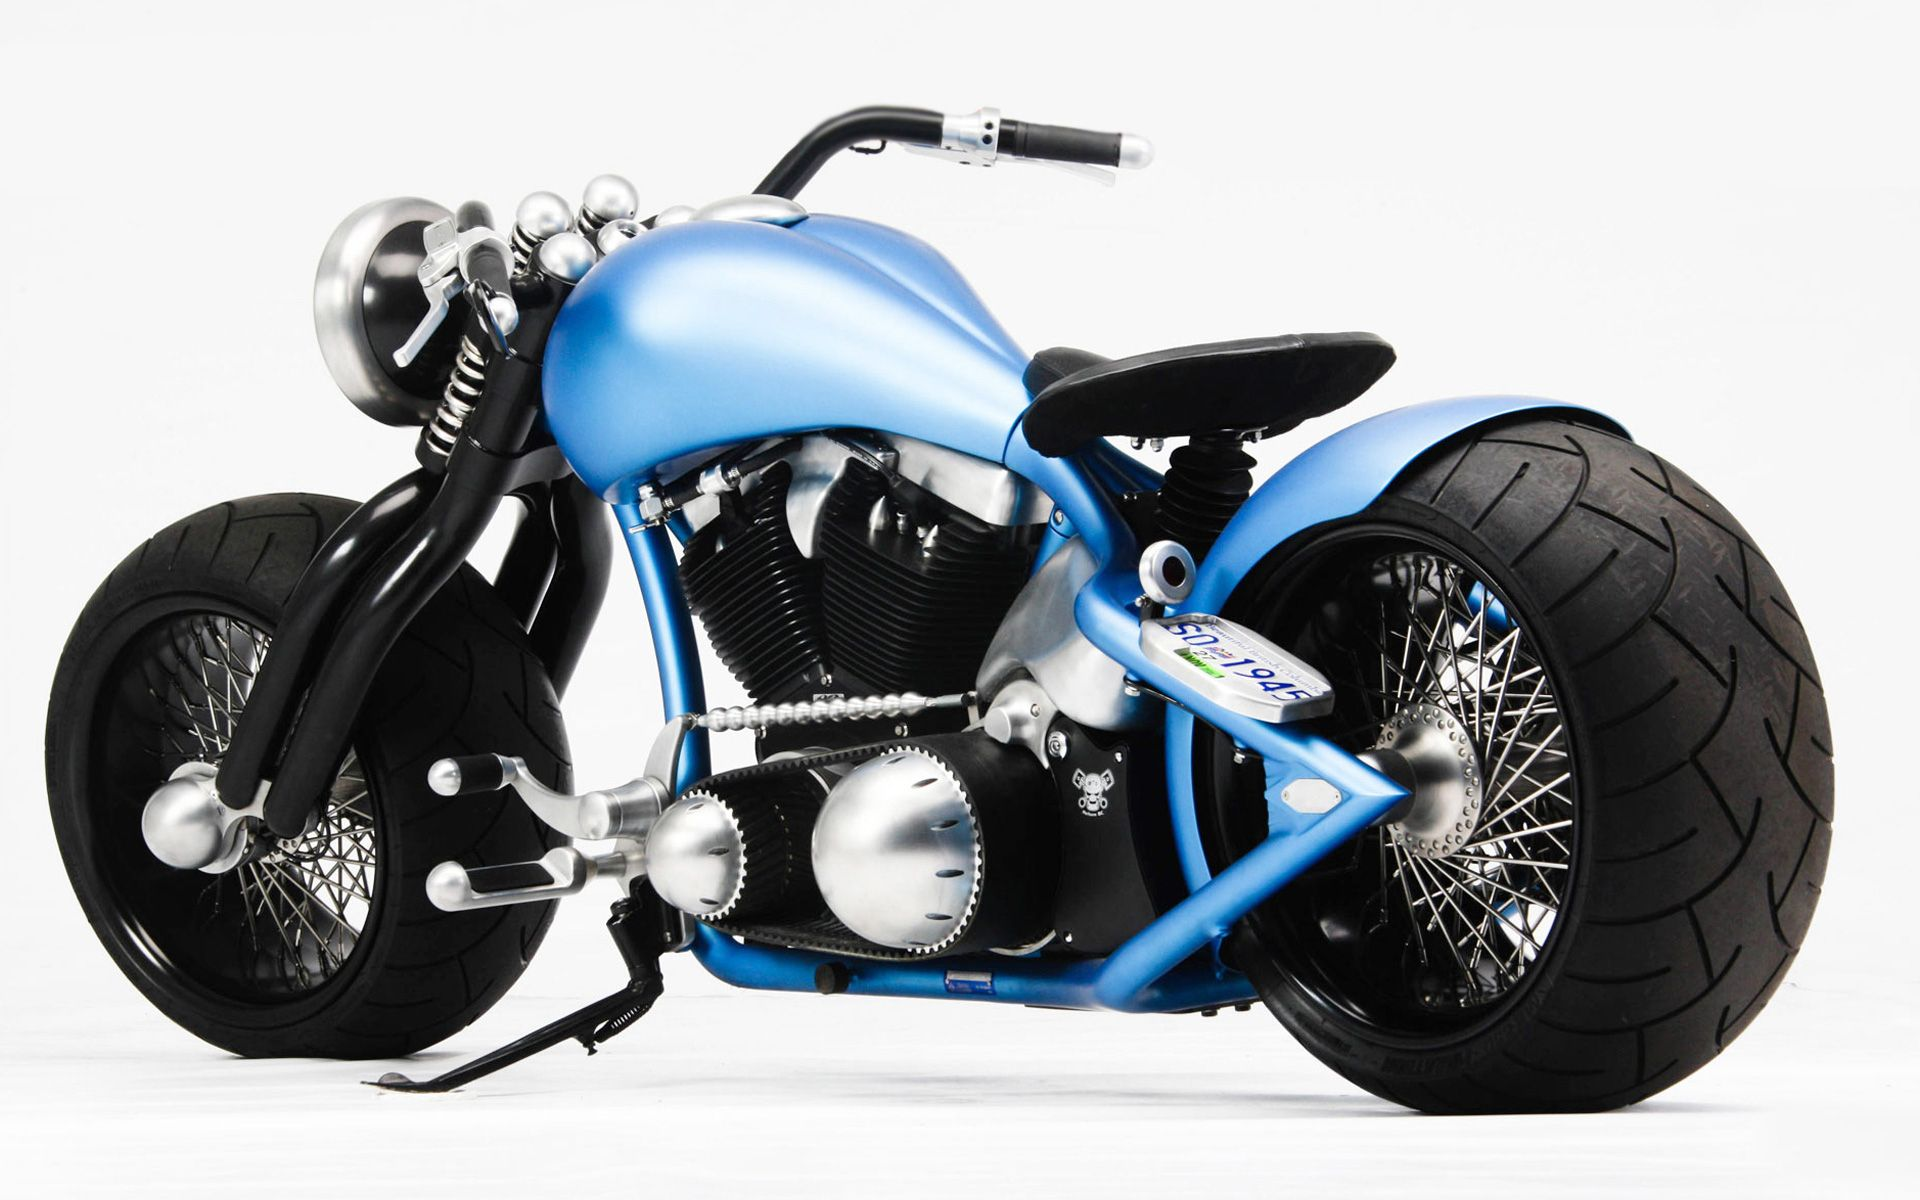 american choppers bike hd wallpaper bikes, hd, wallpapers, free